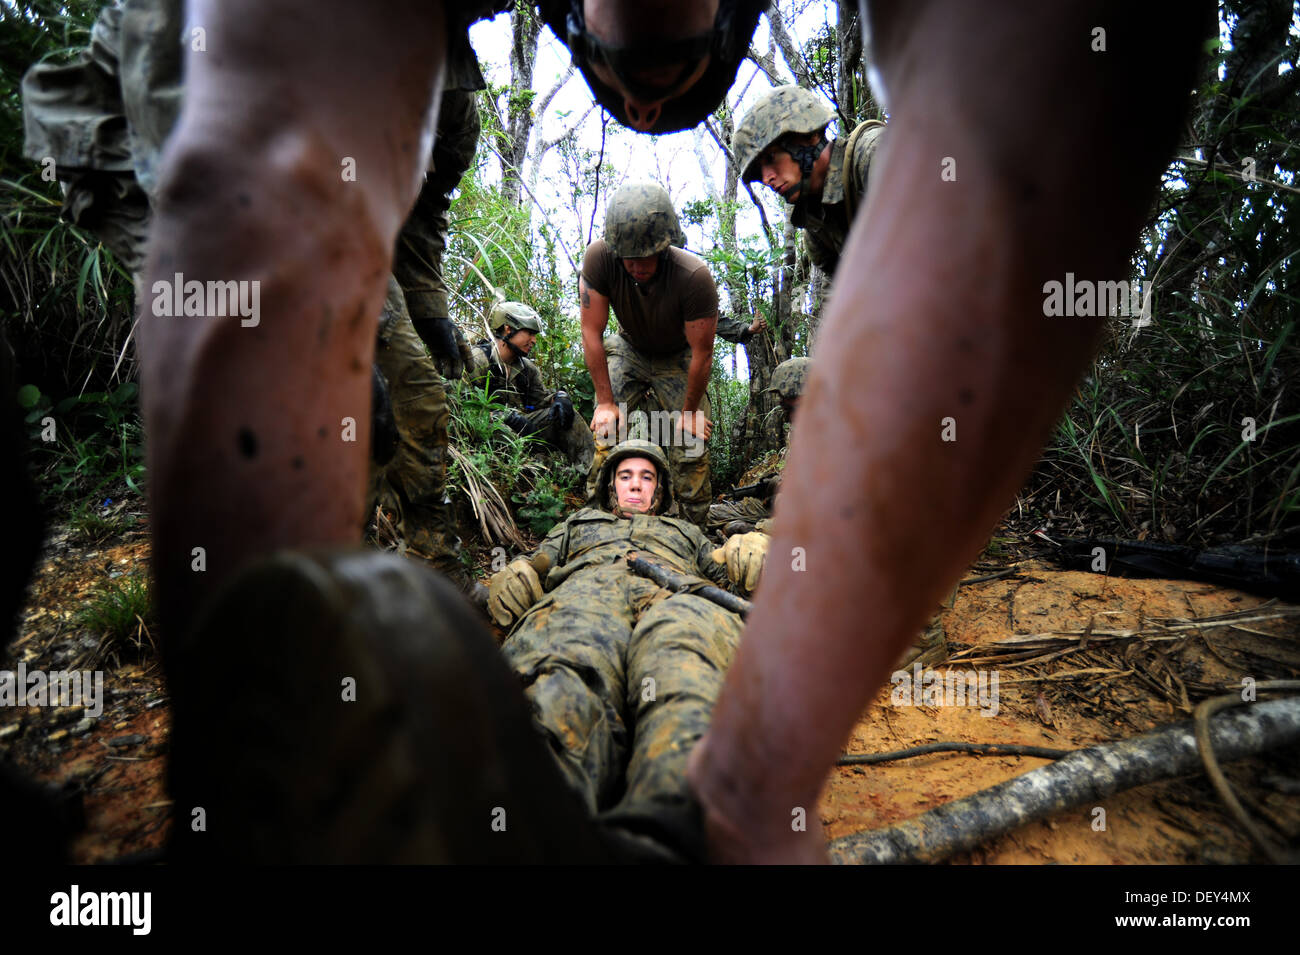 Seabees from Naval Mobile Construction Battalion (NMCB) 3 carry a mock casualty on an improvised stretcher through a tiny crevic - Stock Image